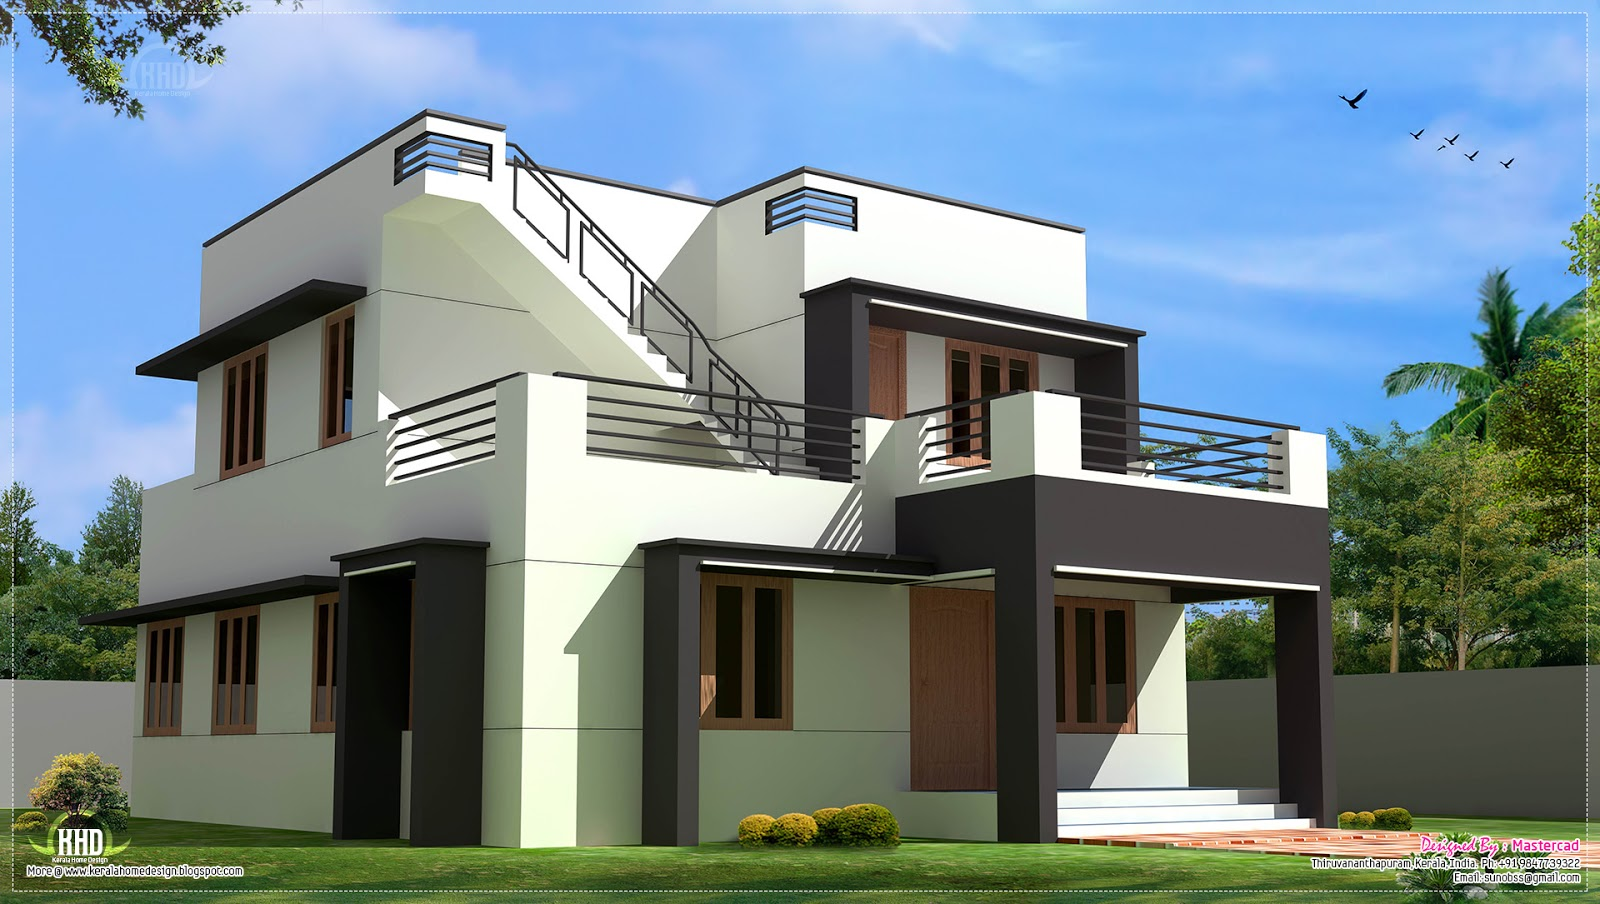 Modern house design in 1700 kerala home design for Modern house designs 2015